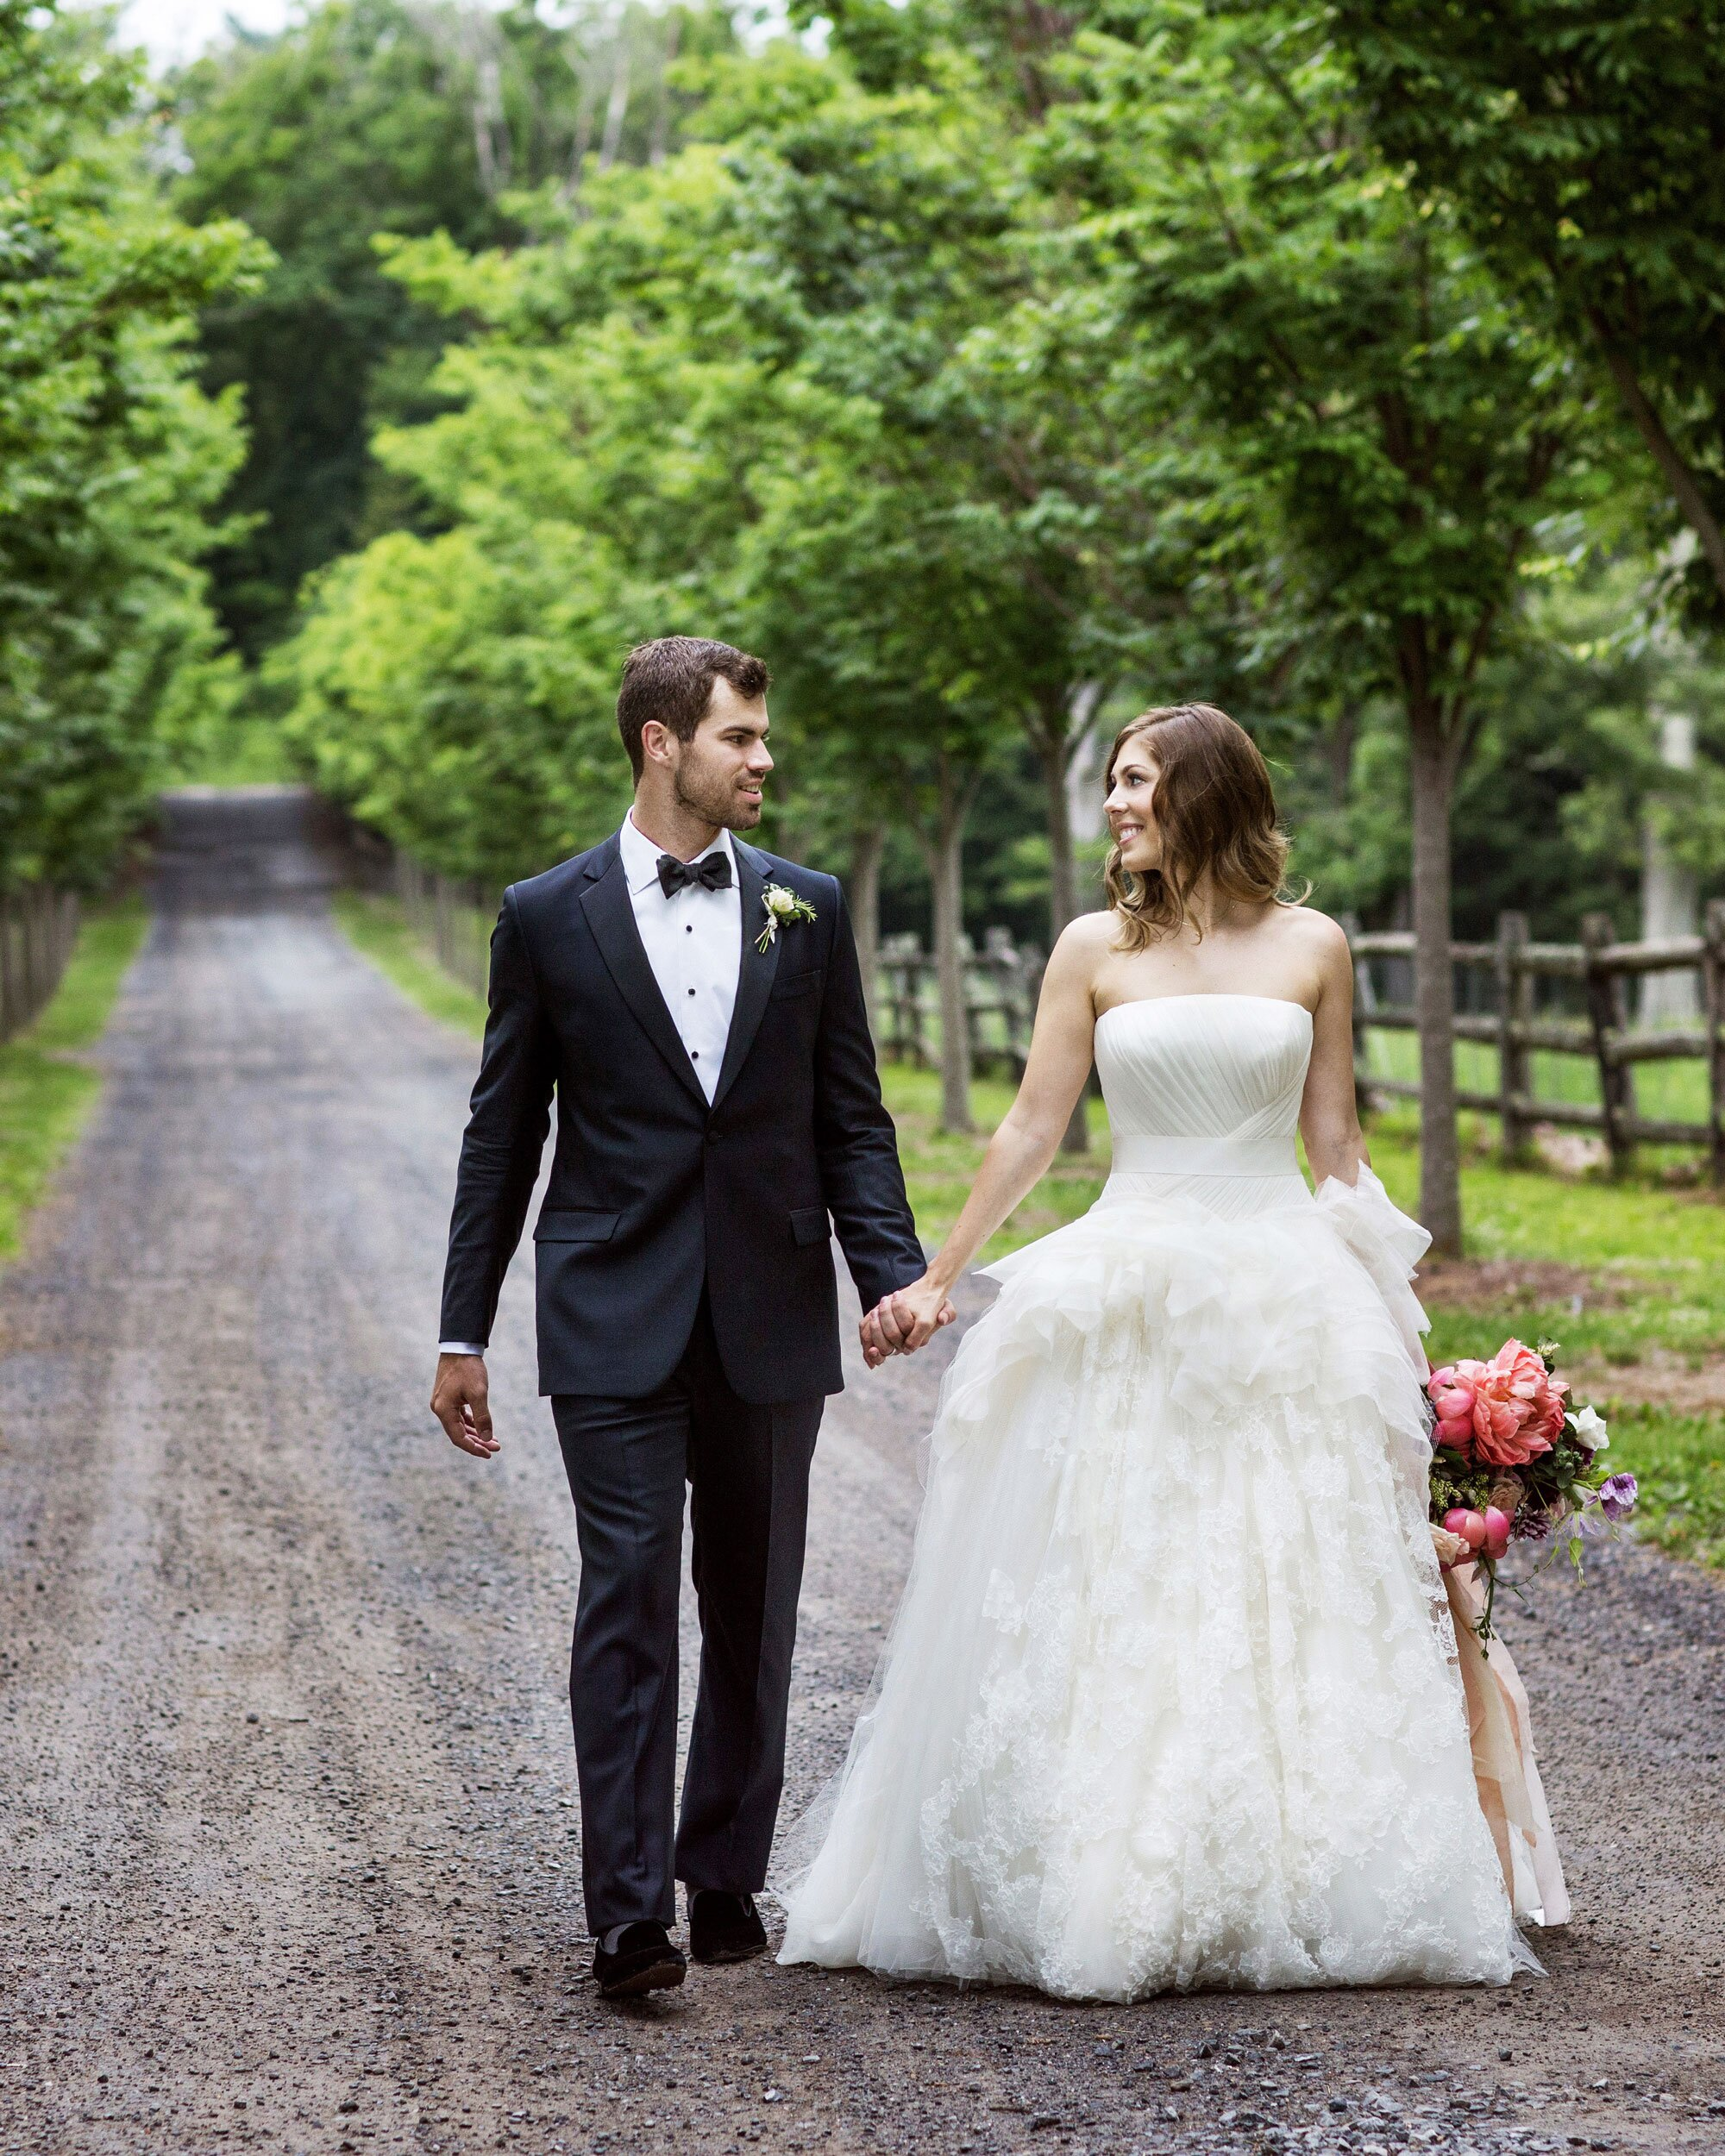 A Whimsical Wedding at an Upstate New York Mansion | Martha